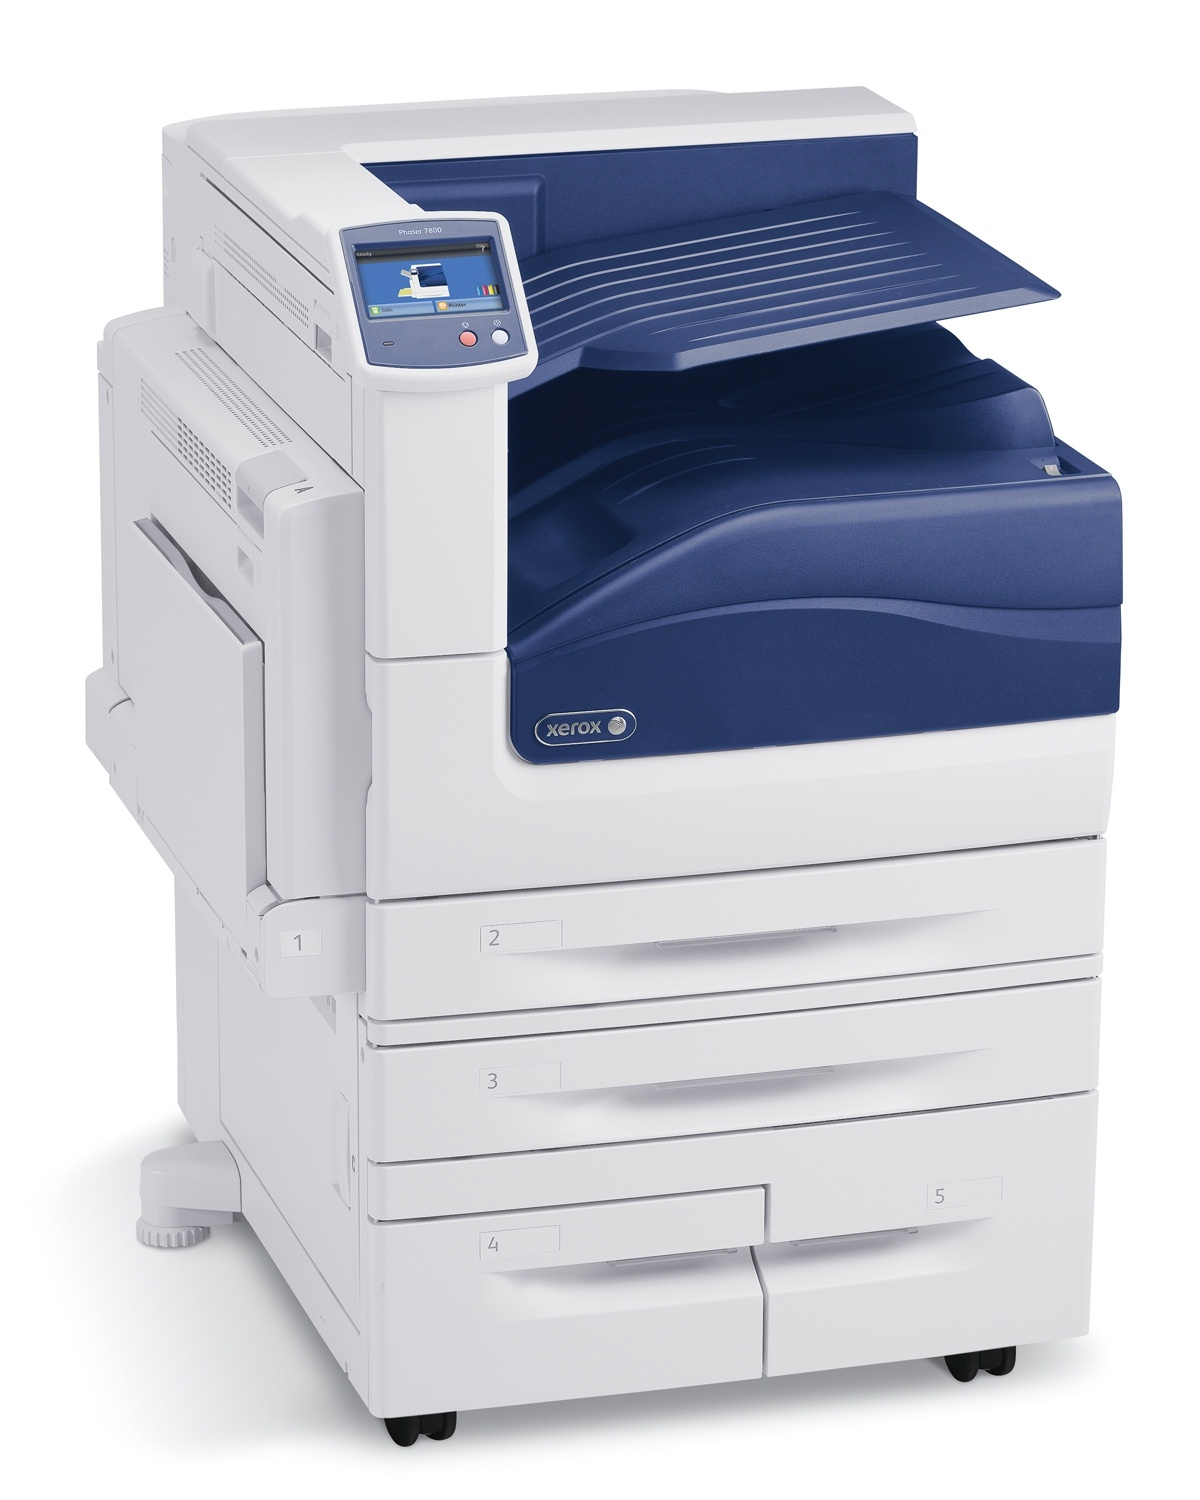 About the Xerox Phaser 7800DXXerox Printers